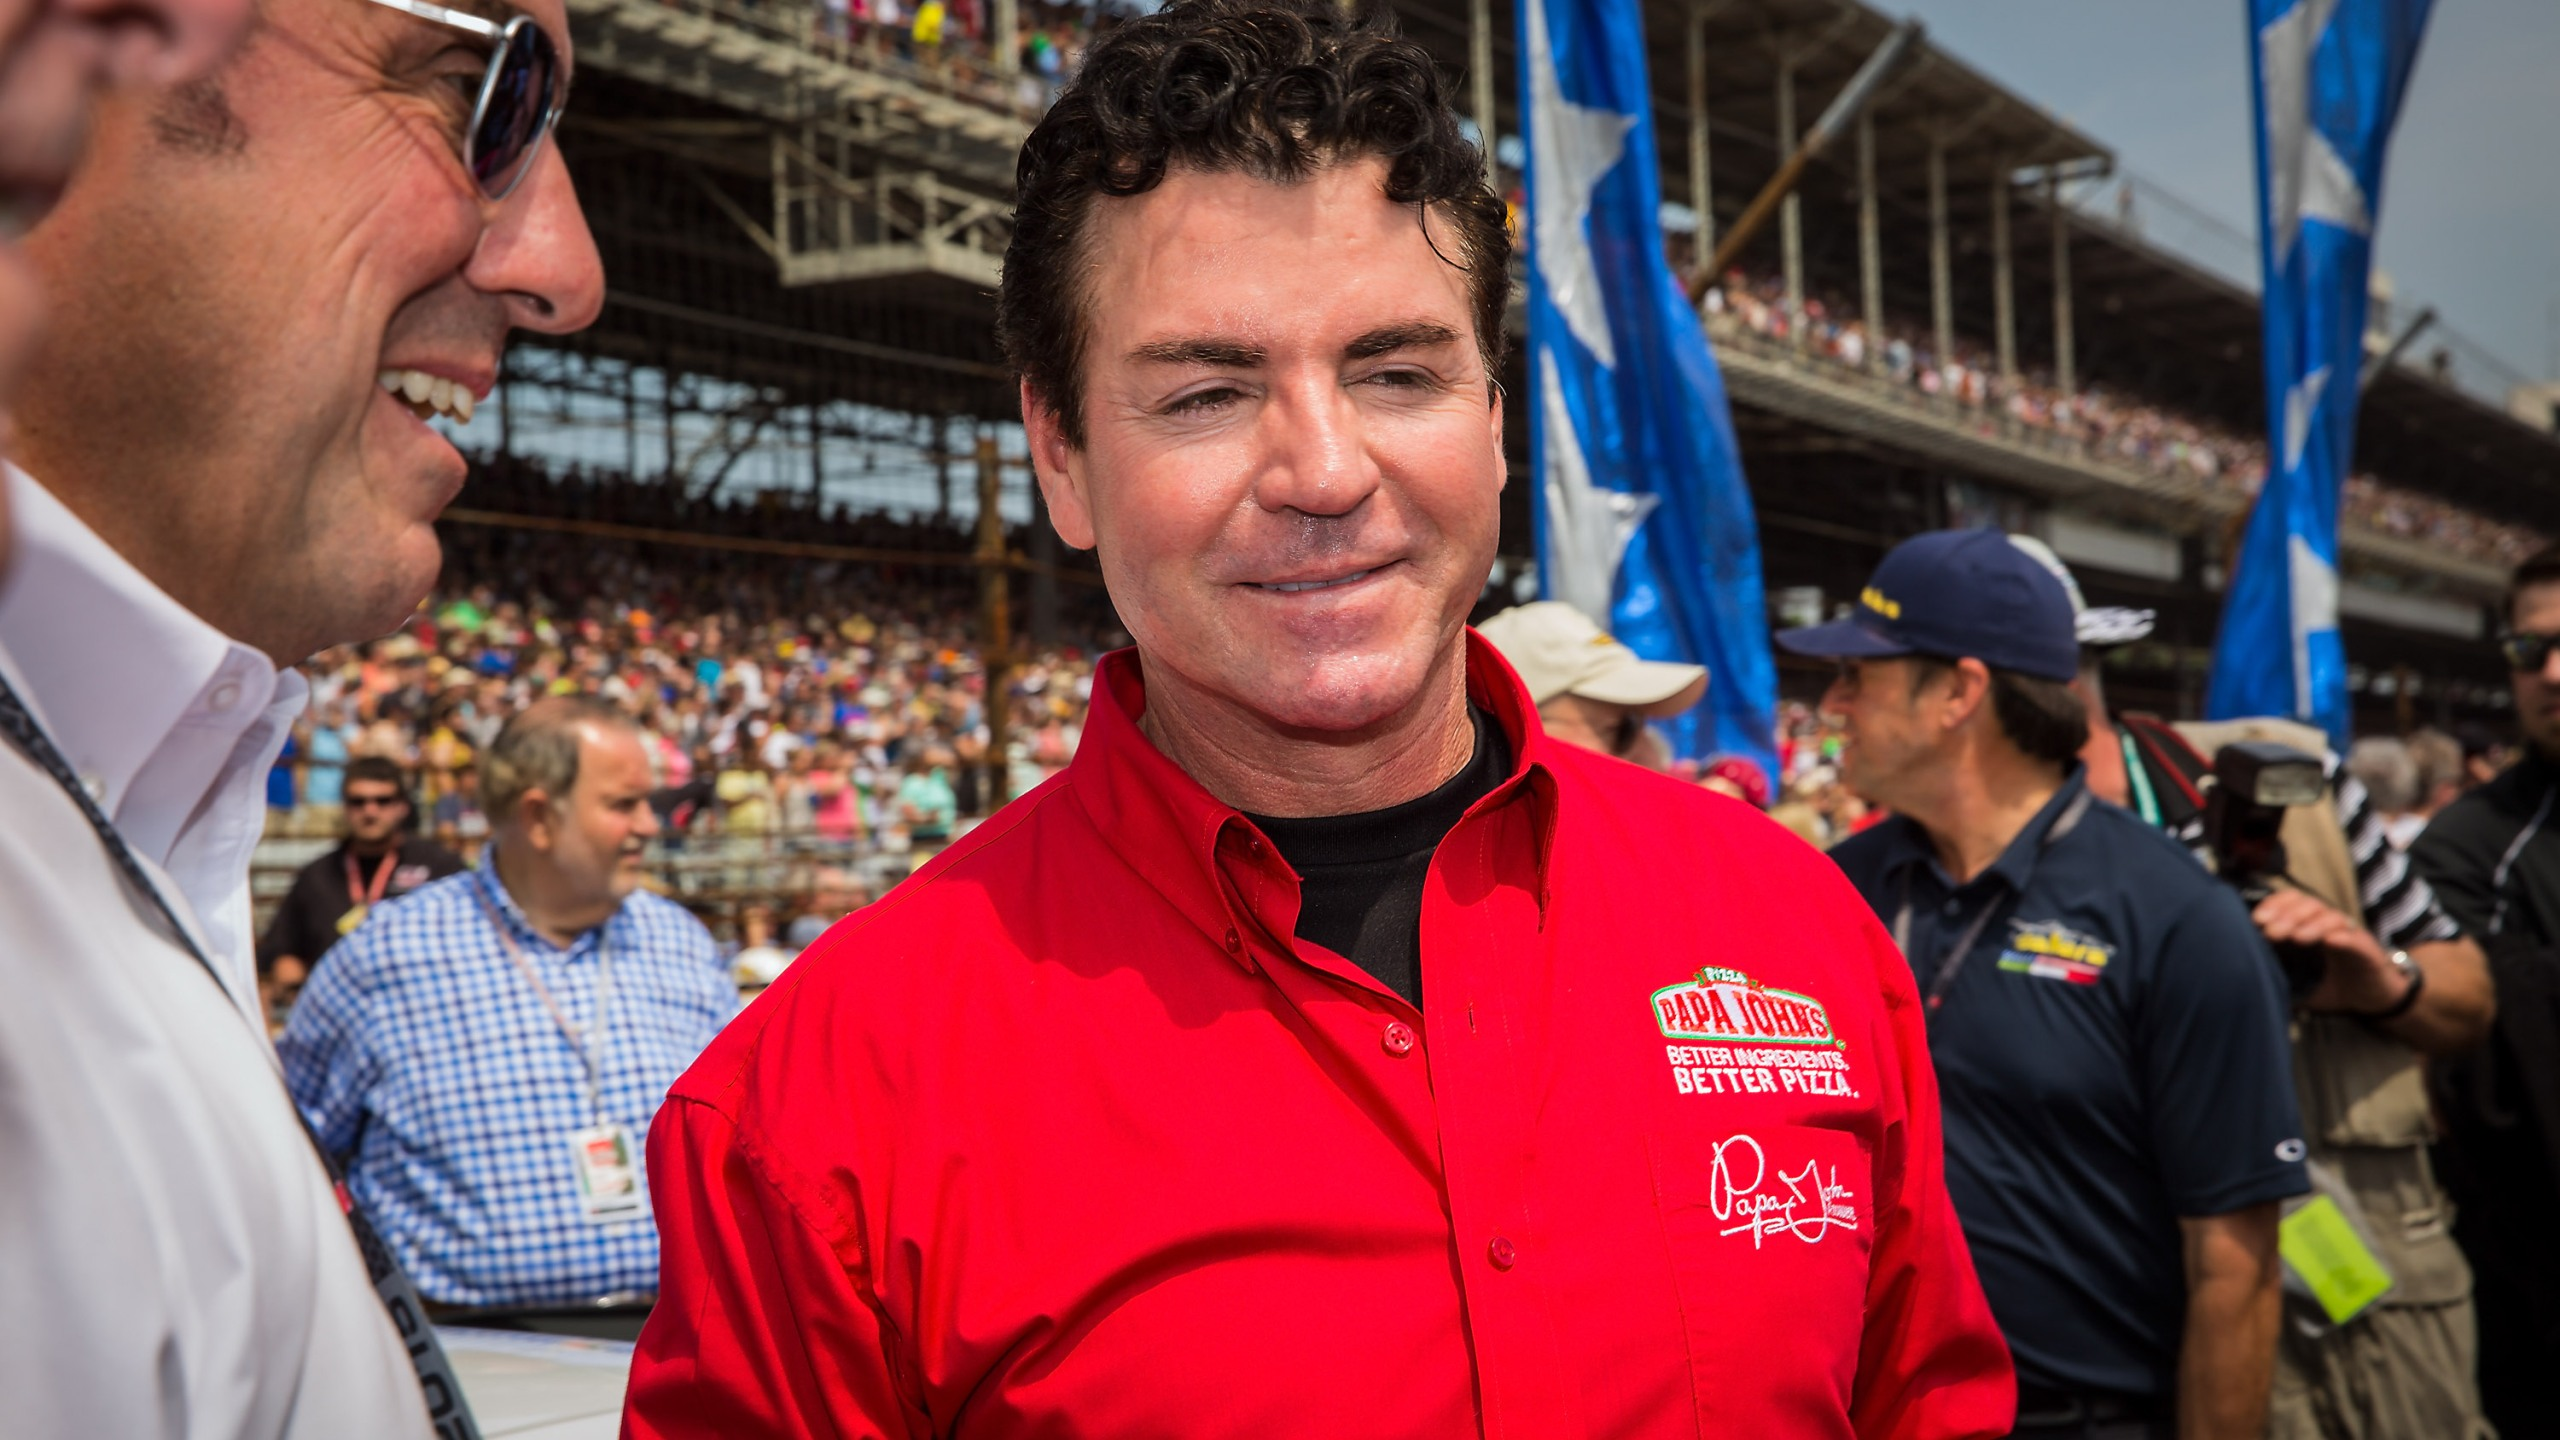 Papa John's founder and CEO John Schnatter attends the Indy 500 in Indianapolis on May 23, 2015. (Credit: Michael Hickey / Getty Images)